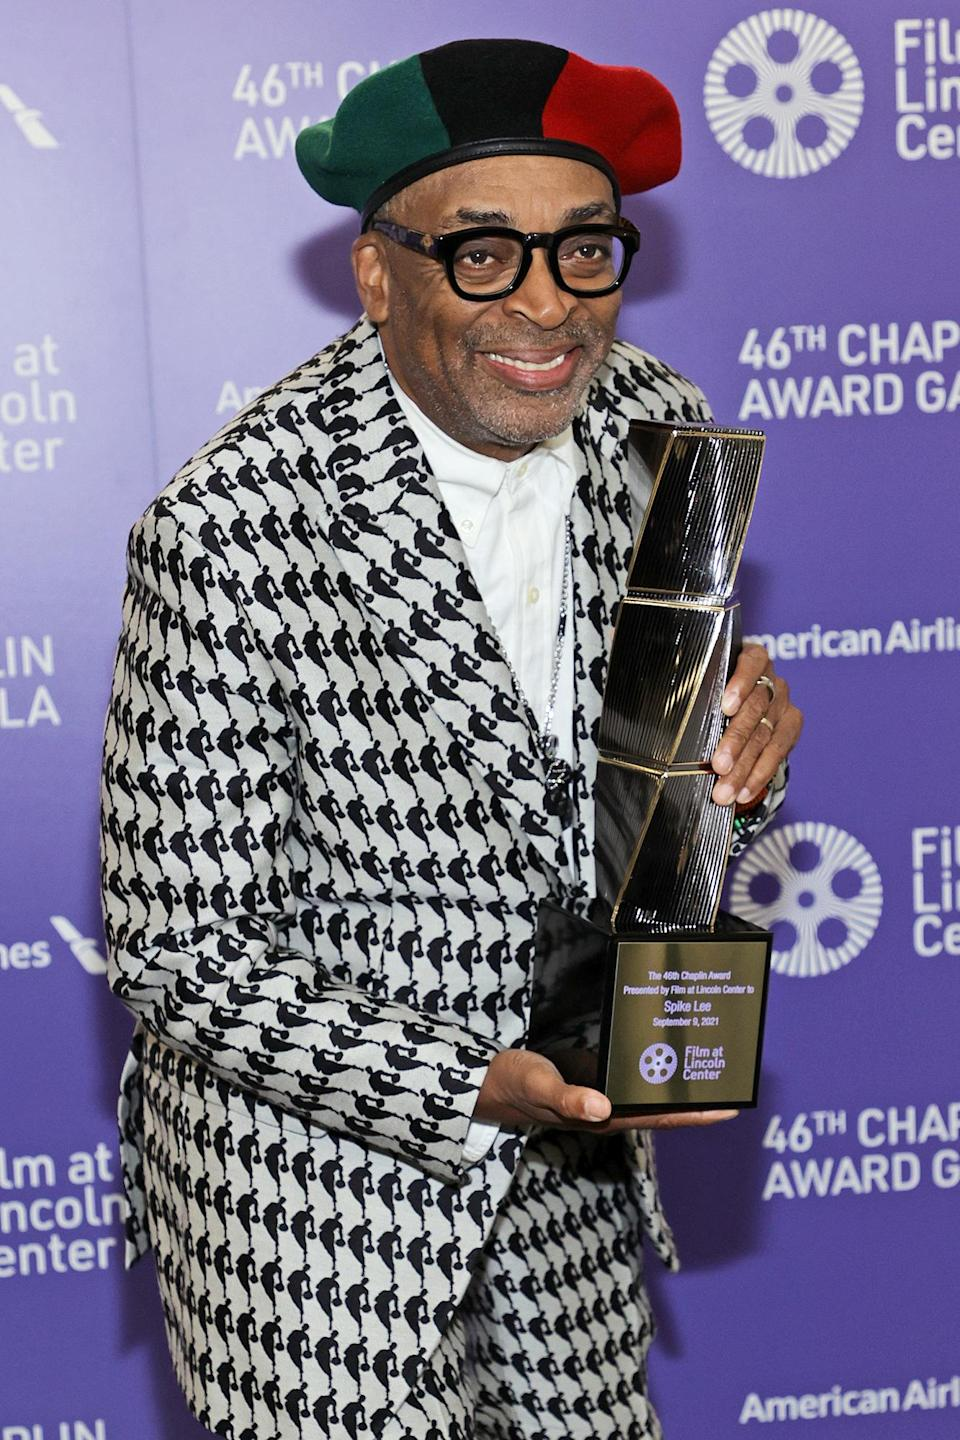 <p>Spike Lee holds up his award at the 46th Chaplin Award Gala honoring his career and legacy on Sept. 9 in N.Y.C. </p>